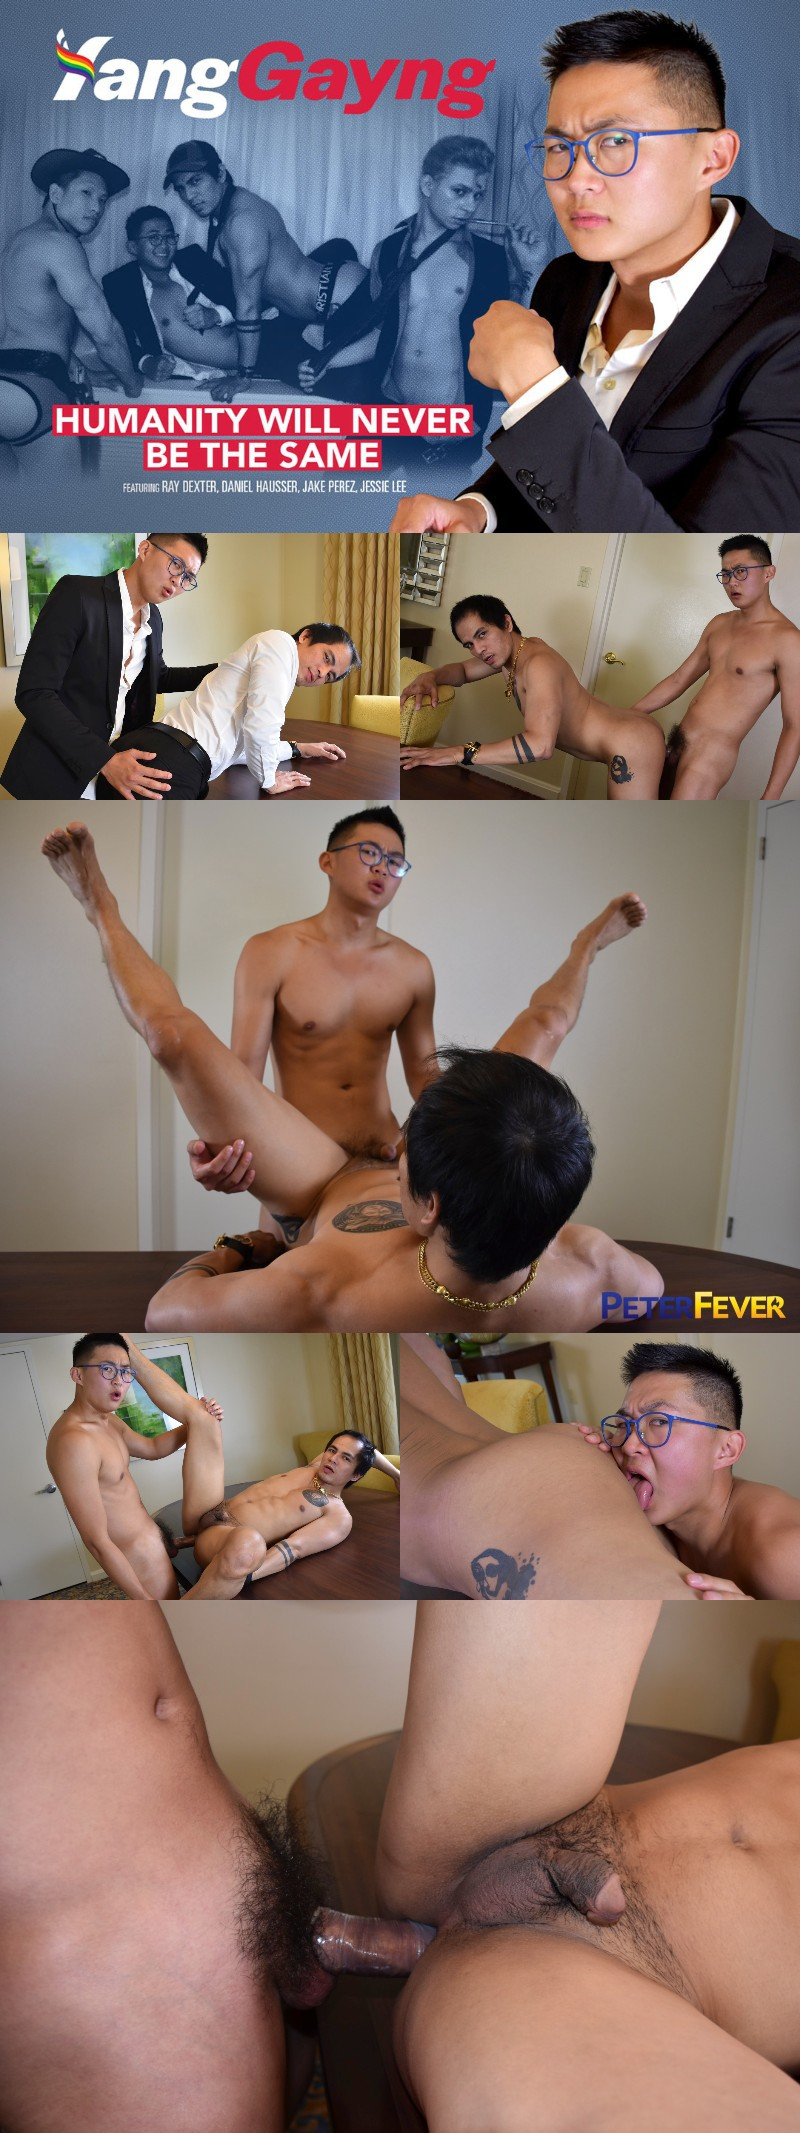 """Peter Fever Releases Election Parody """"The Yang Gayng"""""""